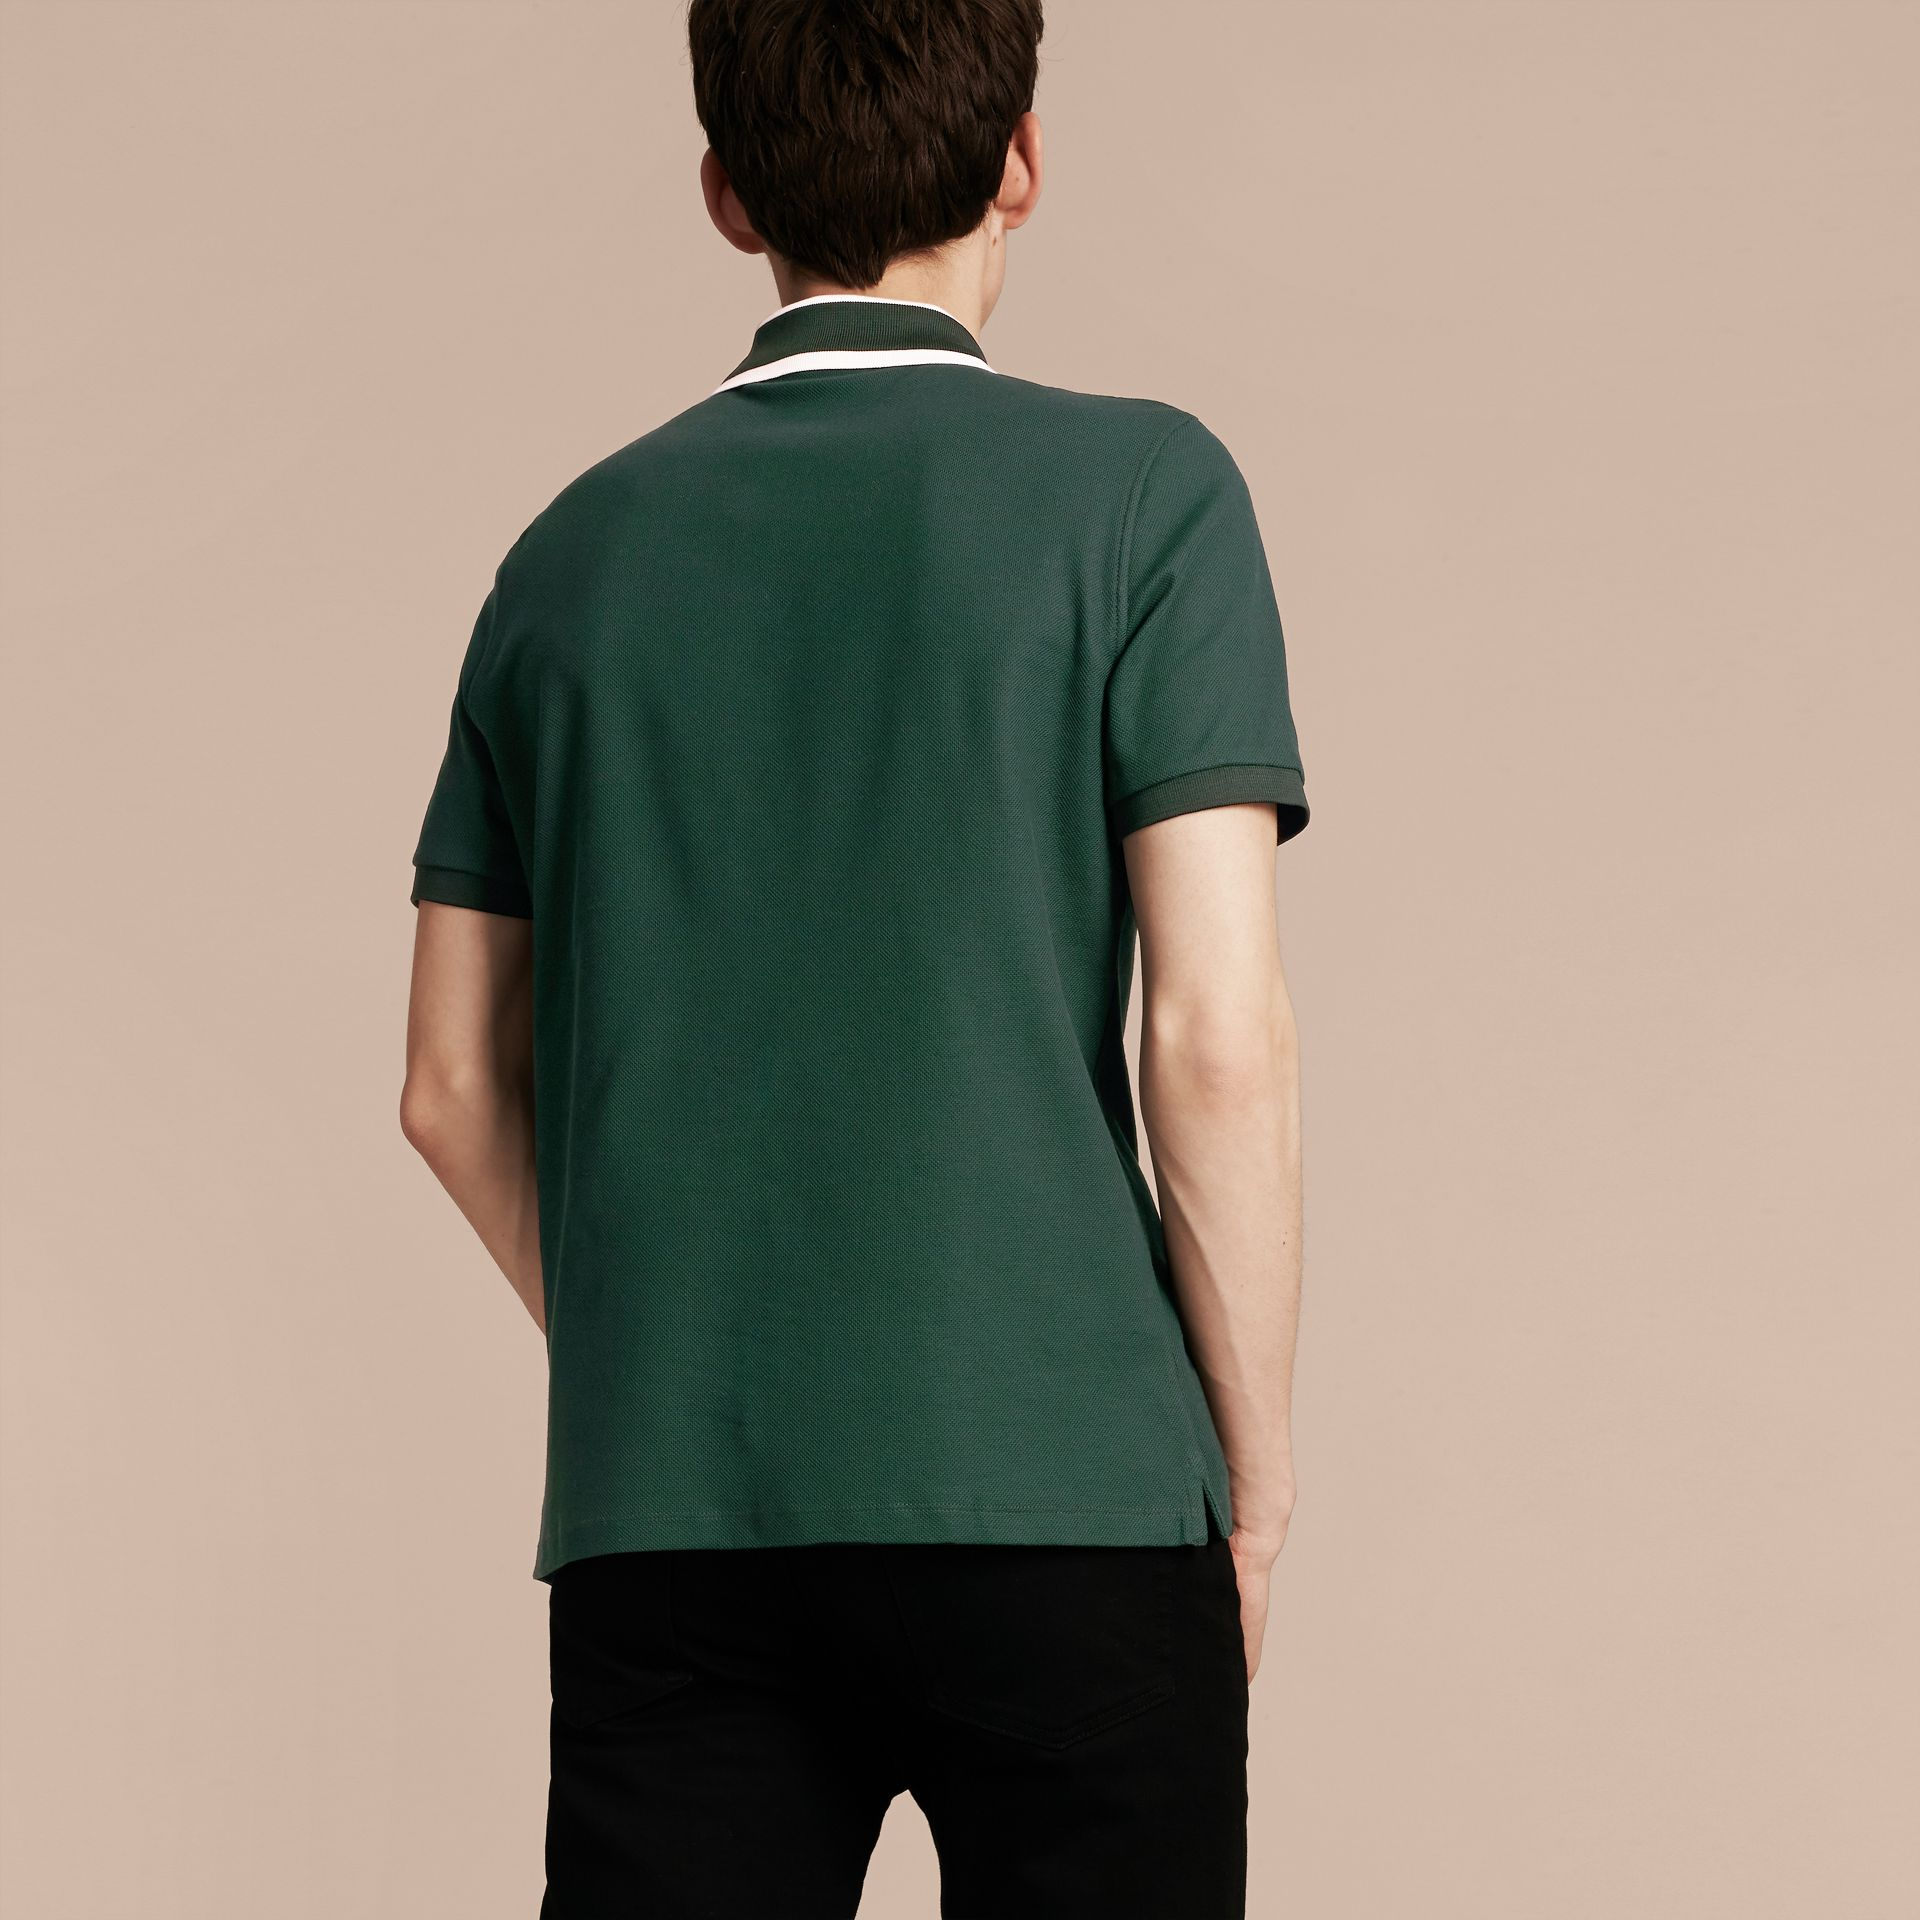 Racing green Striped Collar Cotton Piqué Polo Shirt Racing Green - gallery image 3